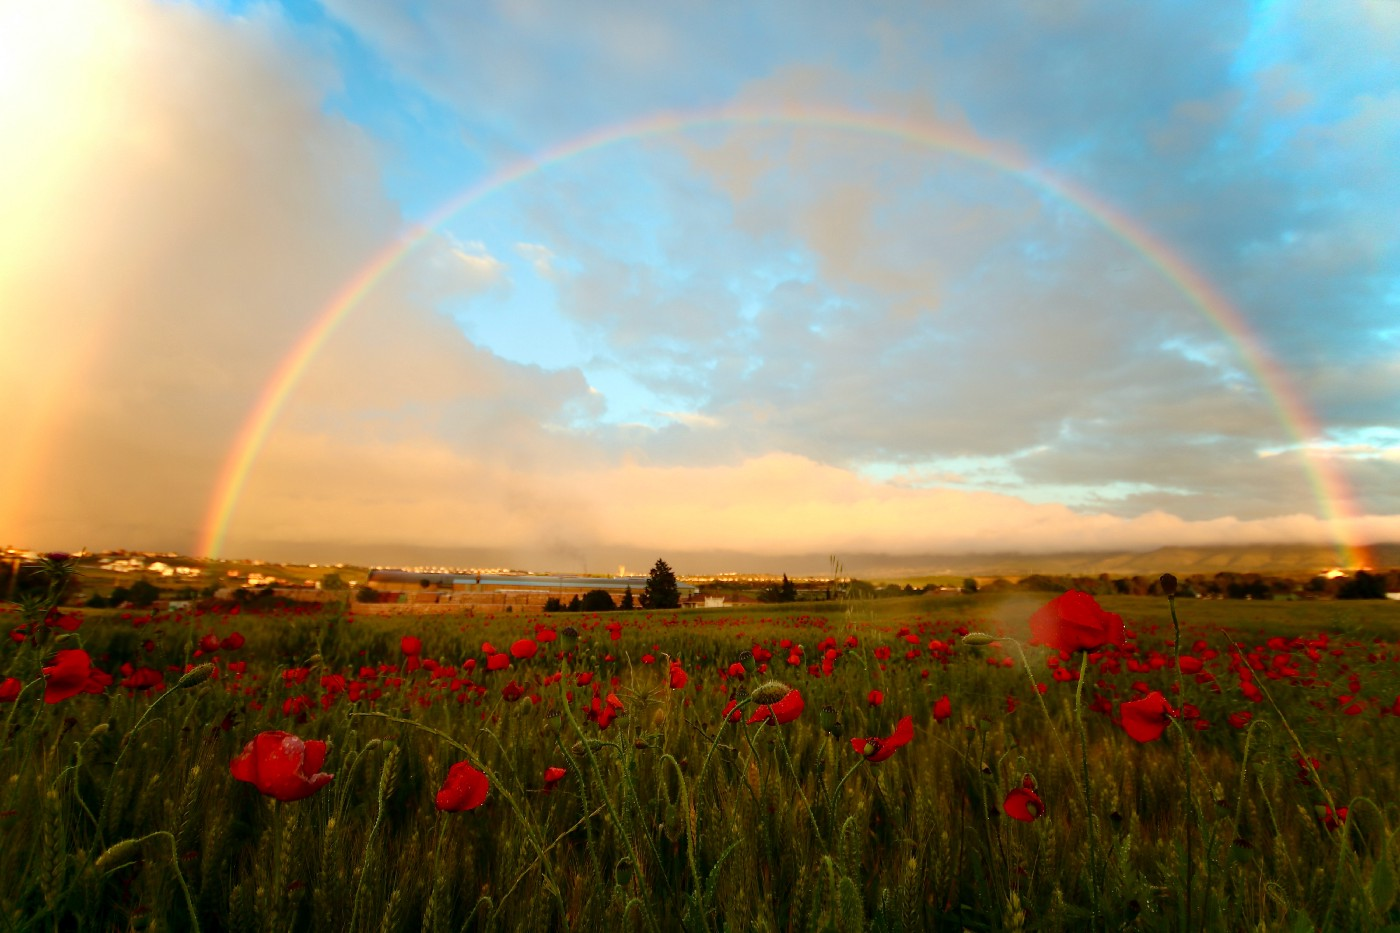 Rainbow over a field of poppies